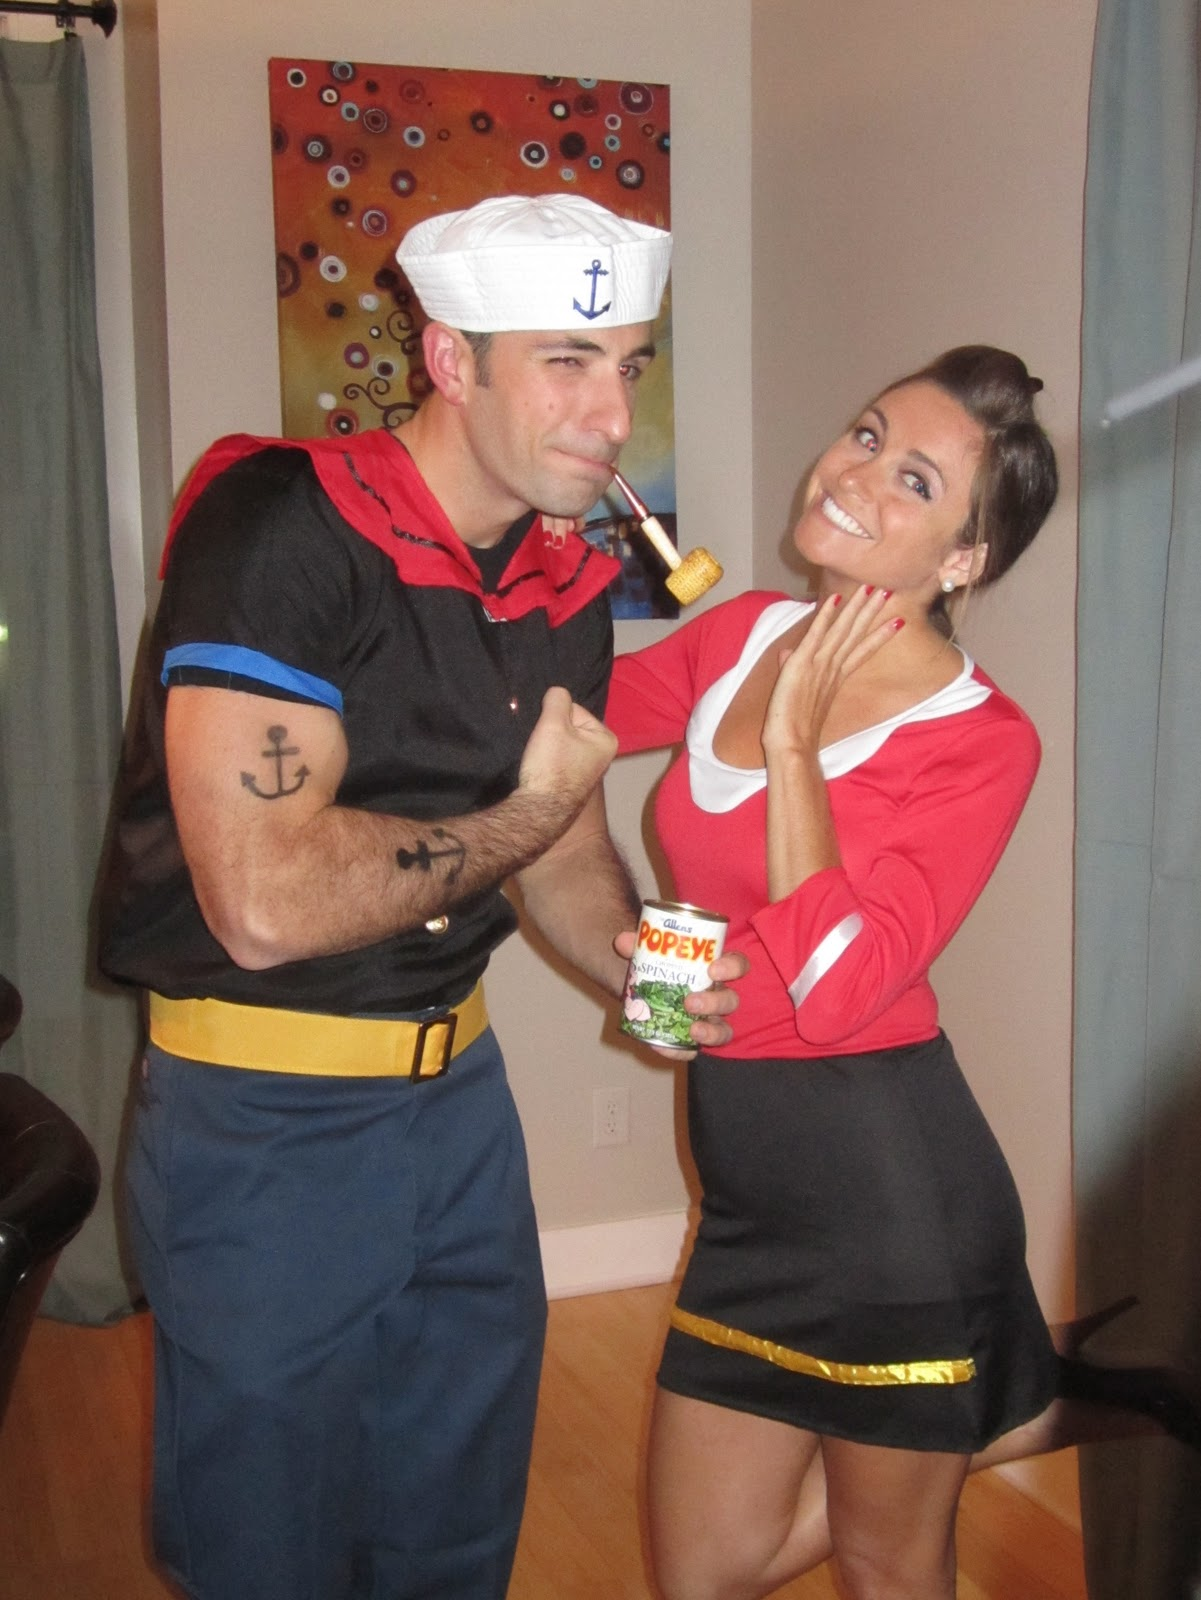 17 DIY Halloween Costumes for Modern Couples | mywedding